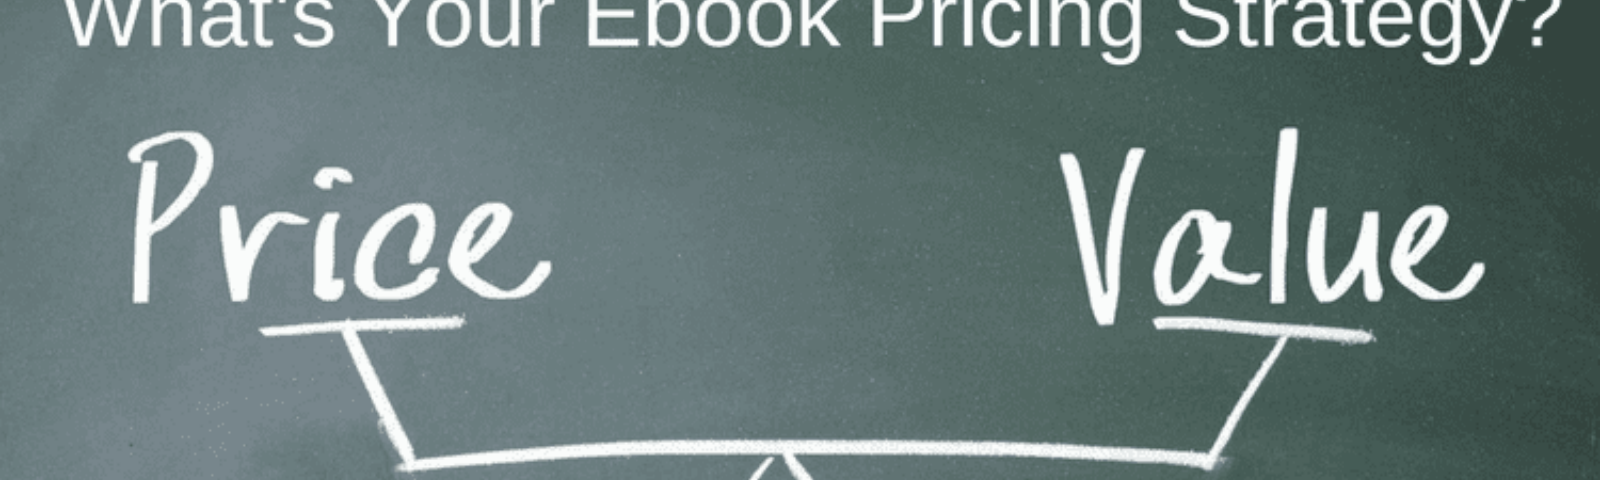 Amazon Ebook Pricing Strategy For Kindle Unlimited - Derek